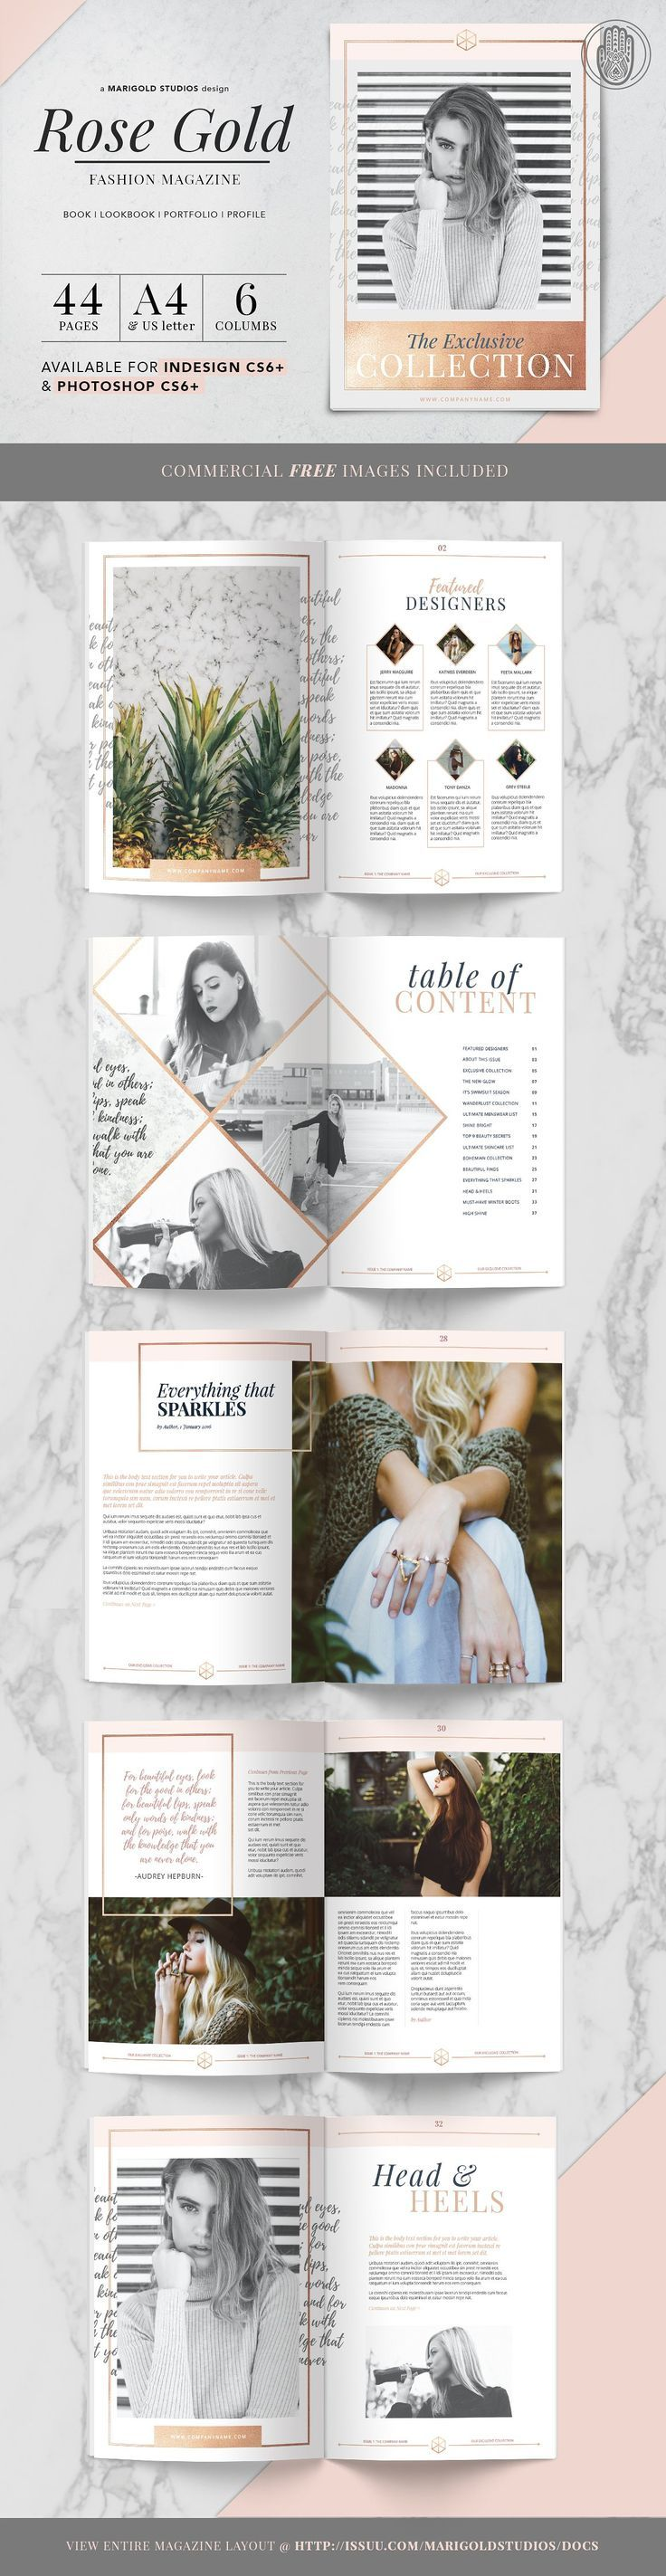 ROSE GOLD | Magazine by Marigold Studios on @creativemarket Ready for Print Magazine and Brochure template creative design and great covers, perfect for modern and stylish corporate appearance for business companies. Modern, simple, clean, minimal and feminine layout inspiration to grab some ideas.